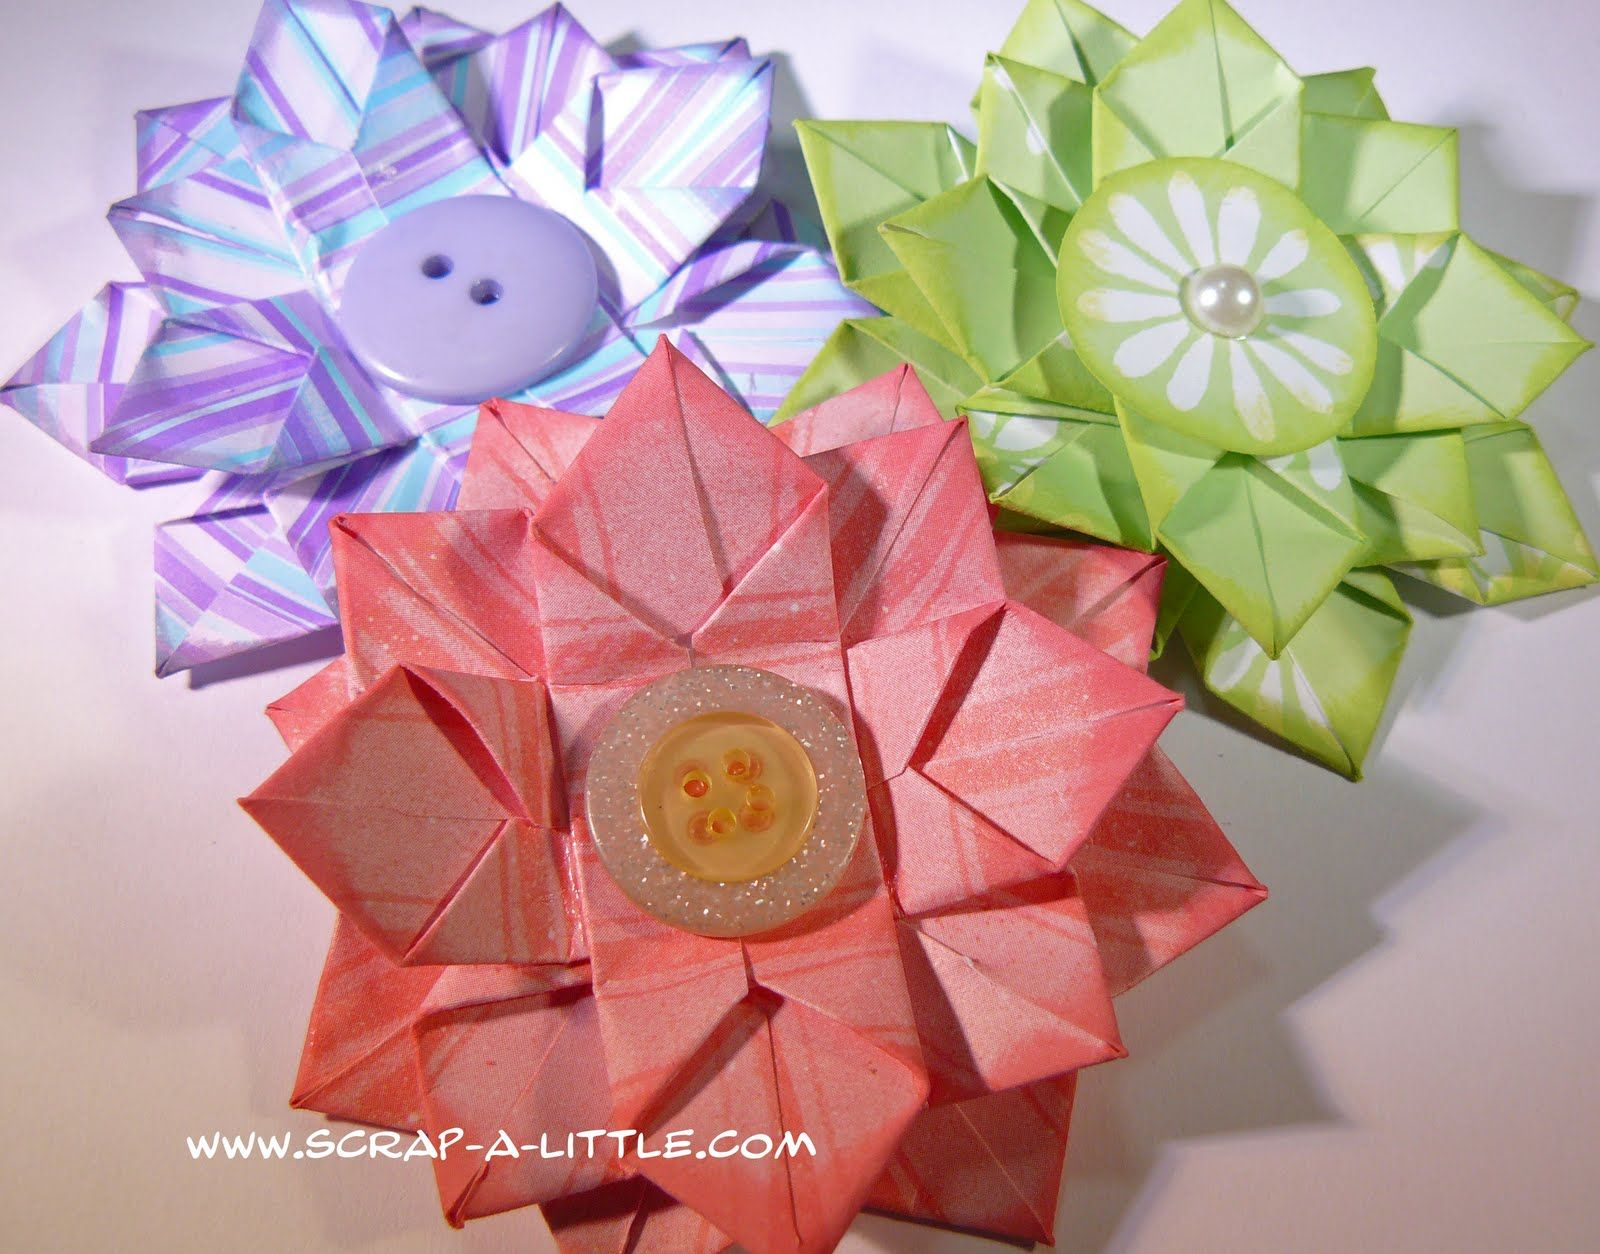 Origami flower tutorial | Lilled / Flowers DIY | Origami ... - photo#17